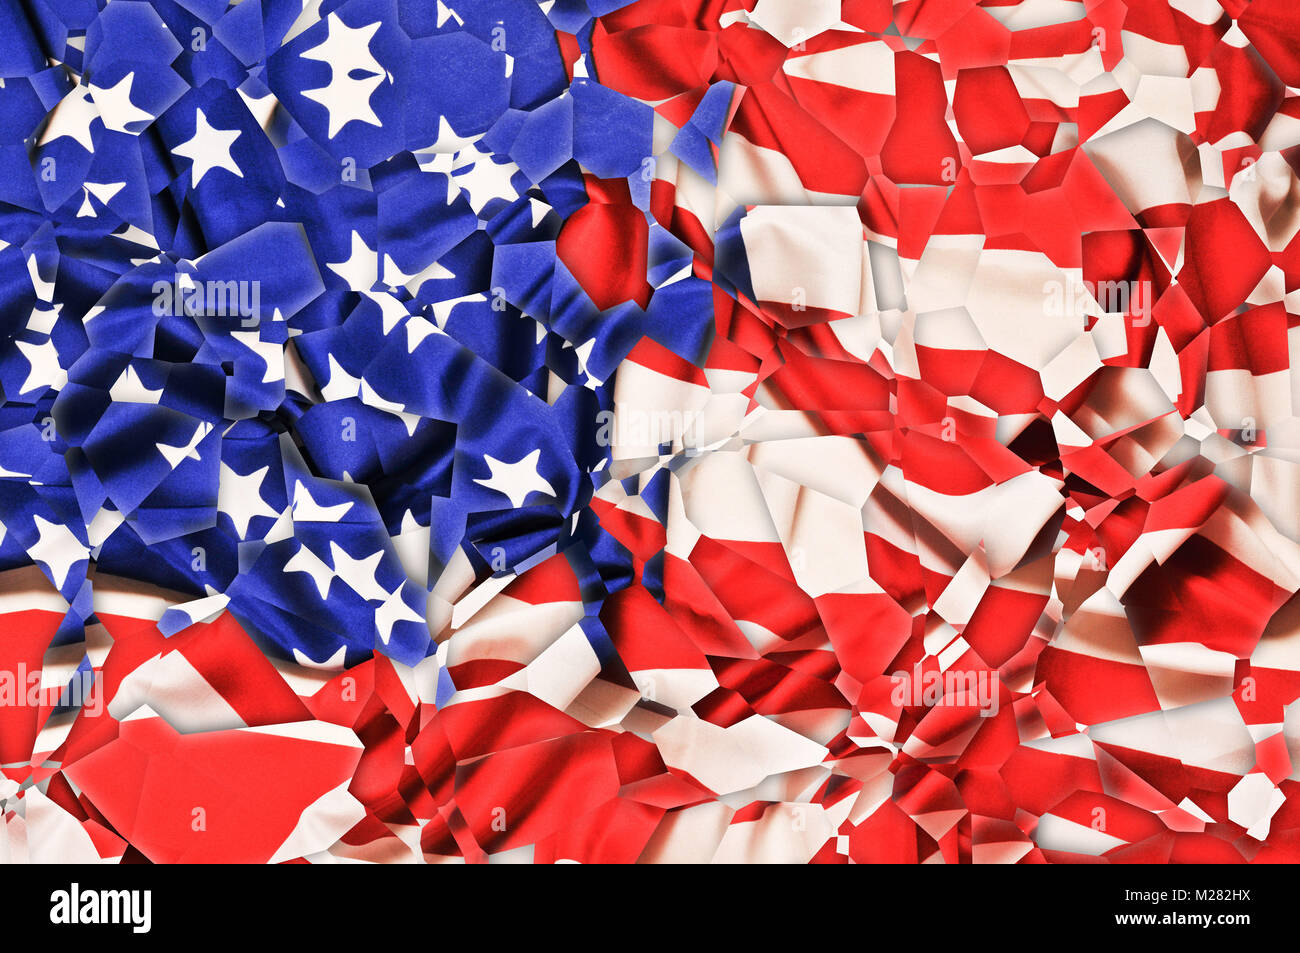 USA flag shattered in pieces, artistic effect - Stock Image